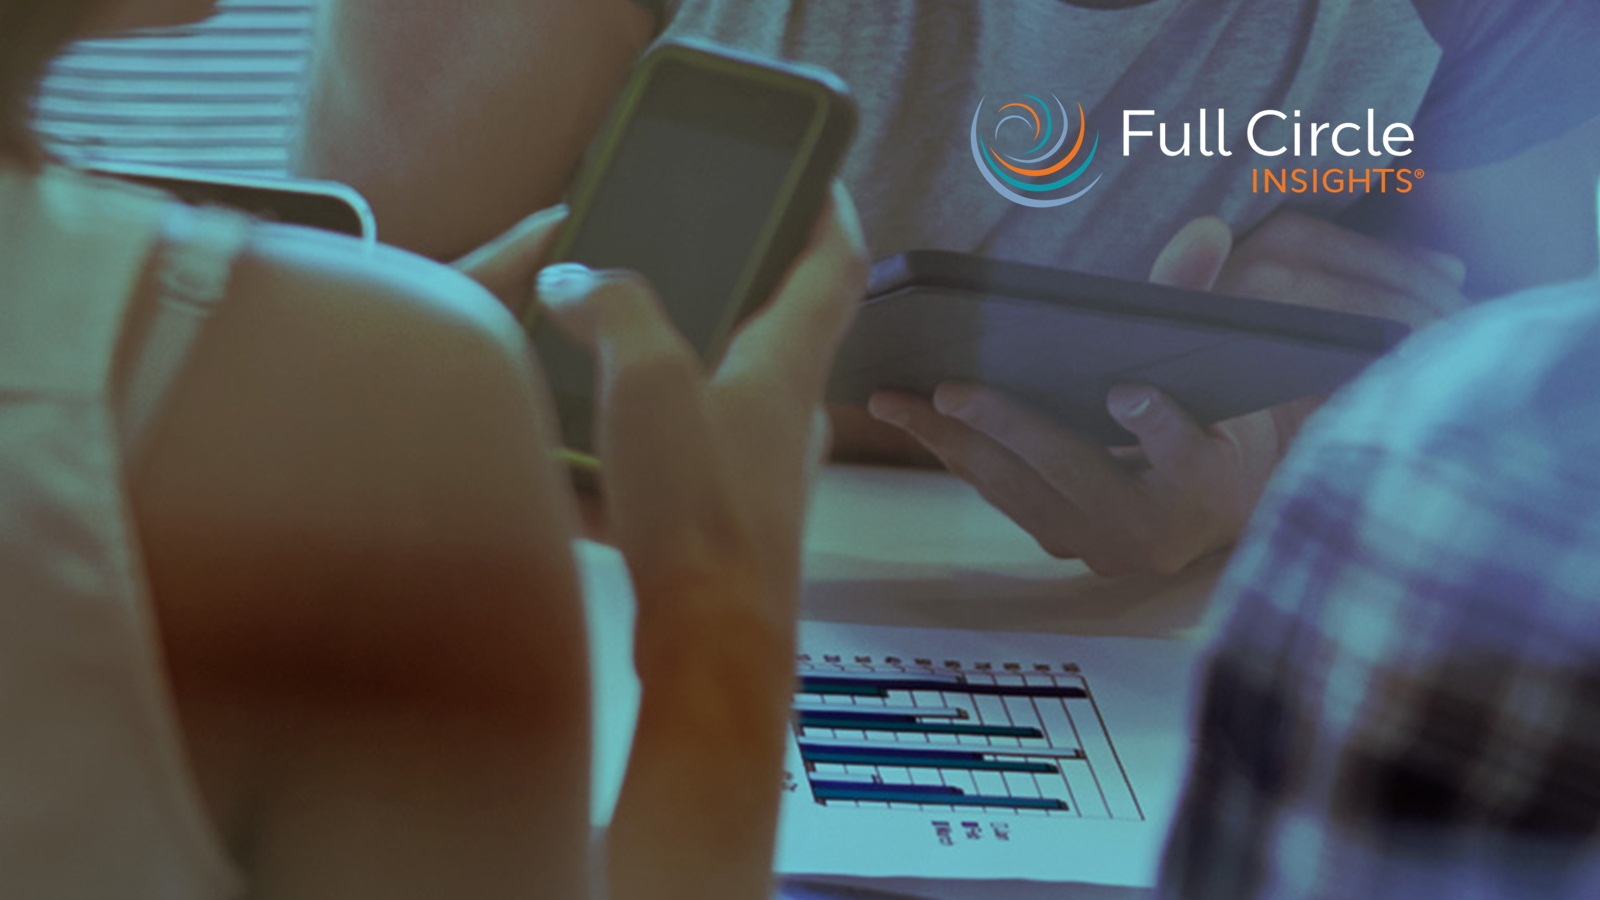 Full Circle Insights Launches New Products to Improve Marketing Analytics